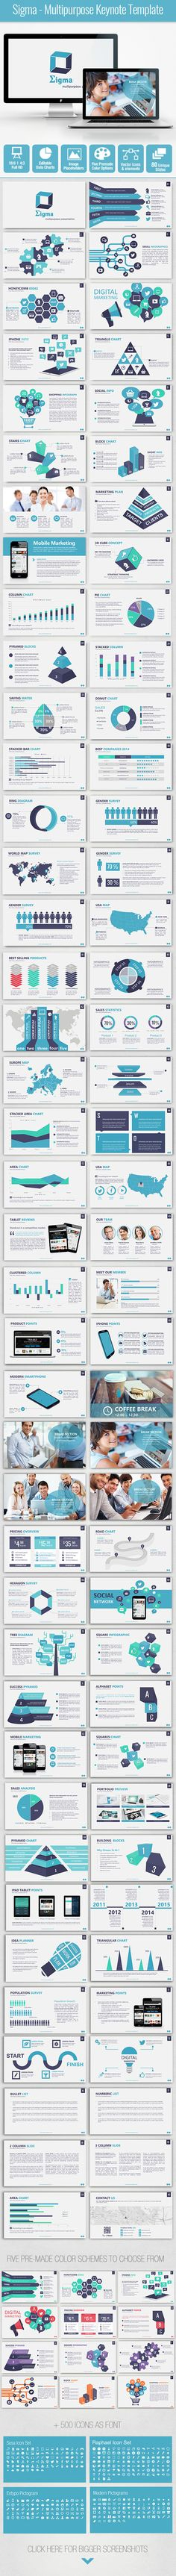 Sigma - Multipurpose Keynote Template #design Download: http://graphicriver.net/item/sigma-multipurpose-keynote-template/13066948?ref=ksioks